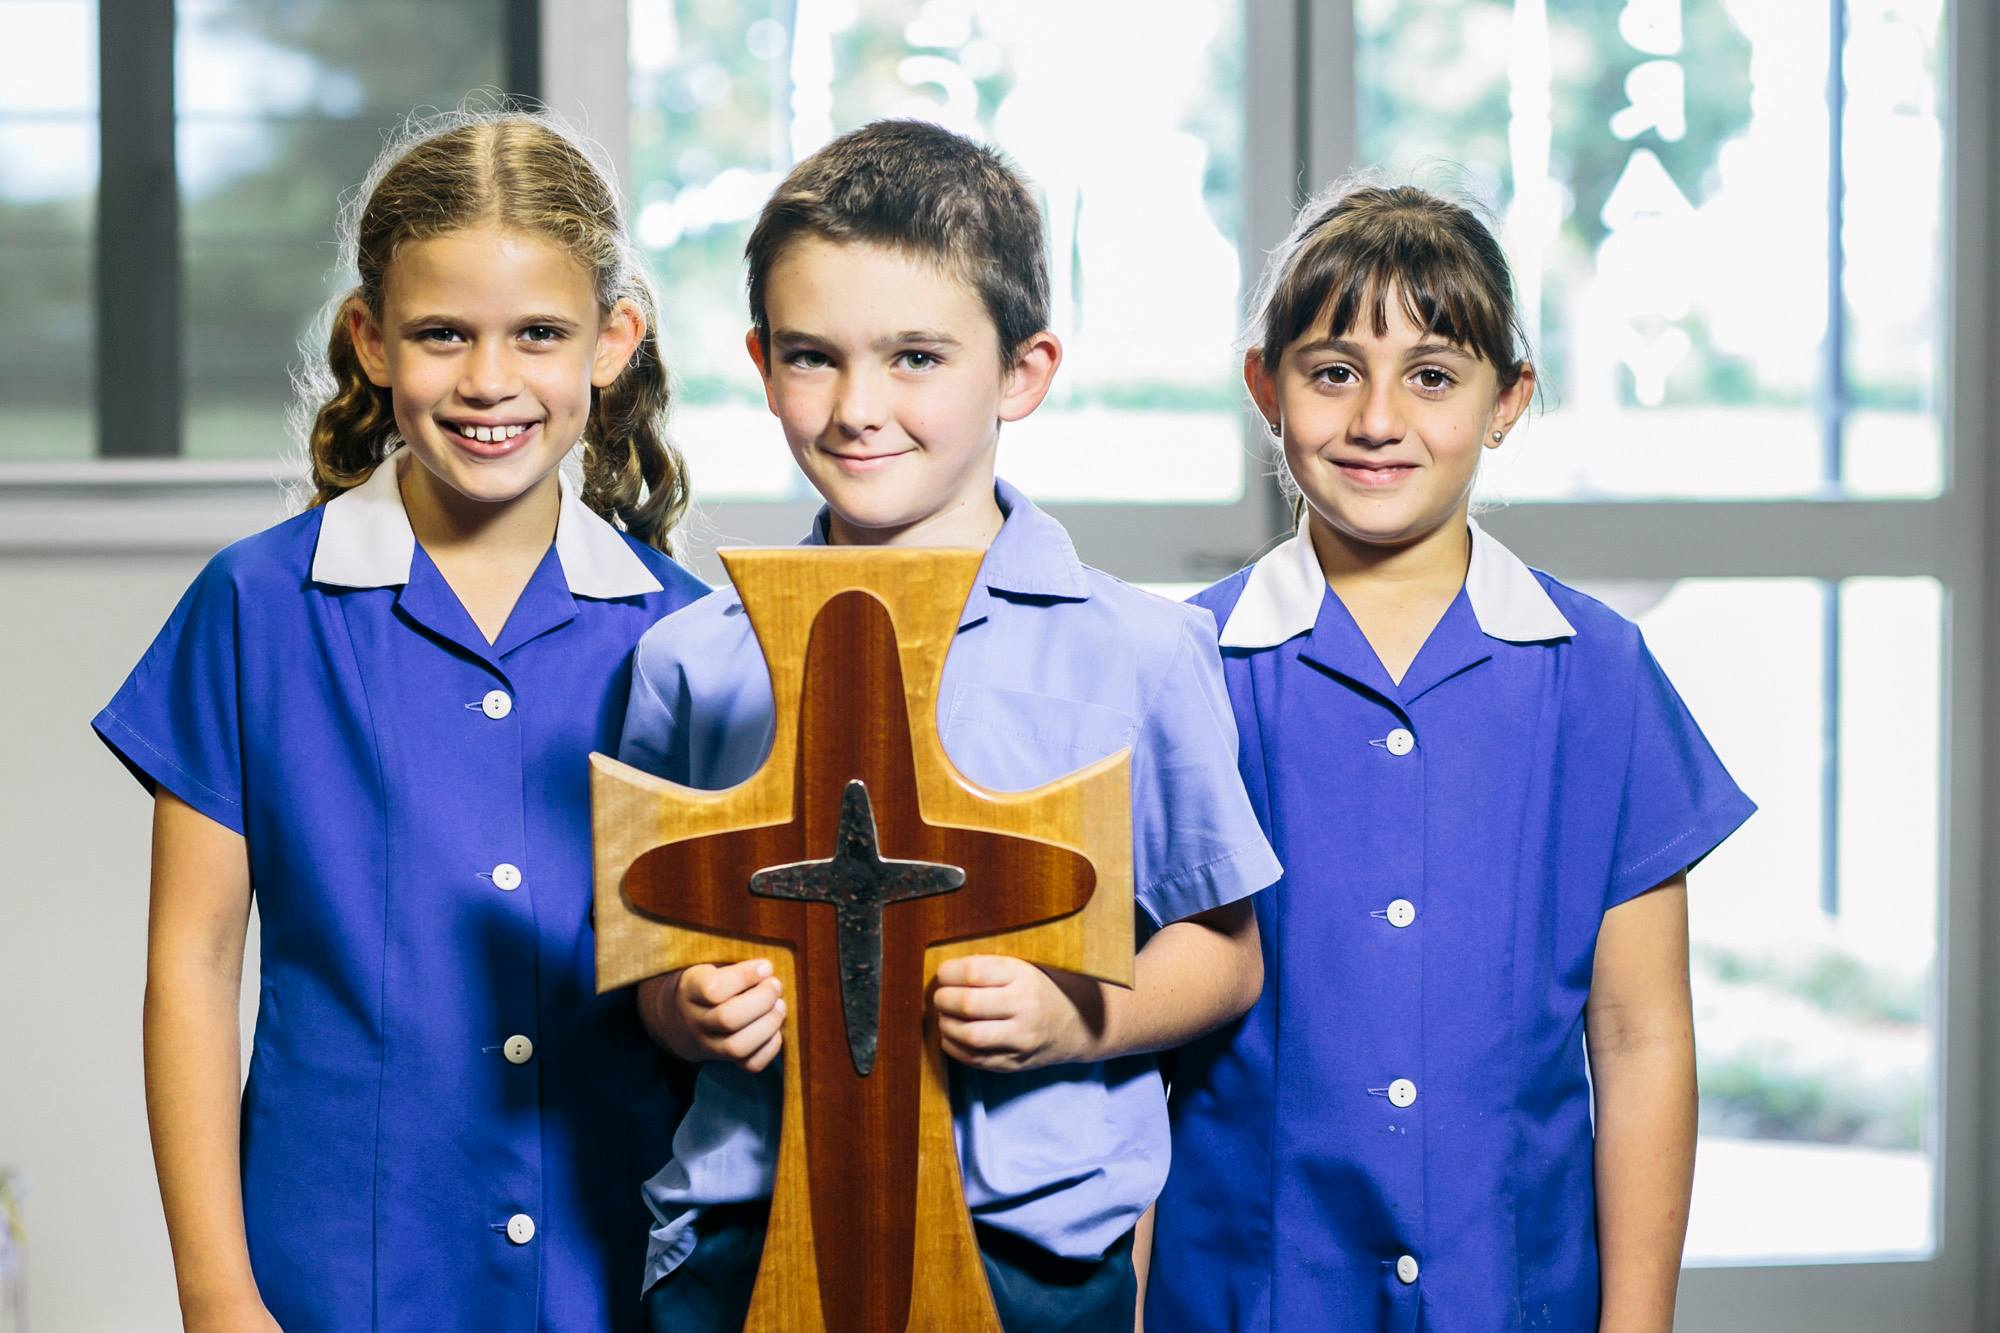 Townsville Catholic Education three students, one holding a wooden cross.